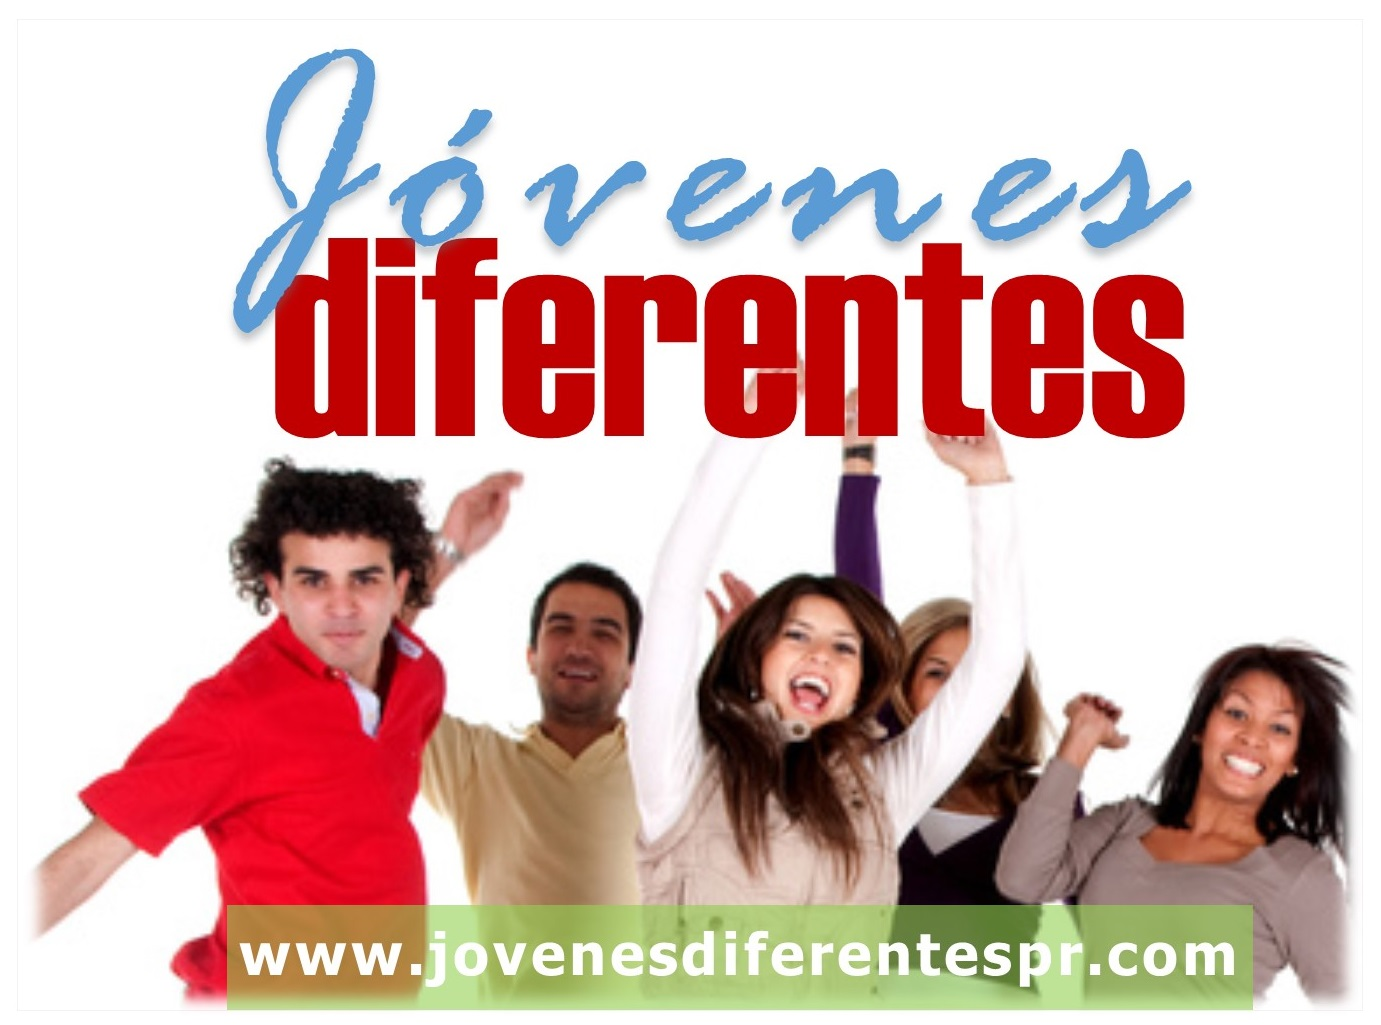 https://www.facebook.com/groups/jovenesdiferentespr